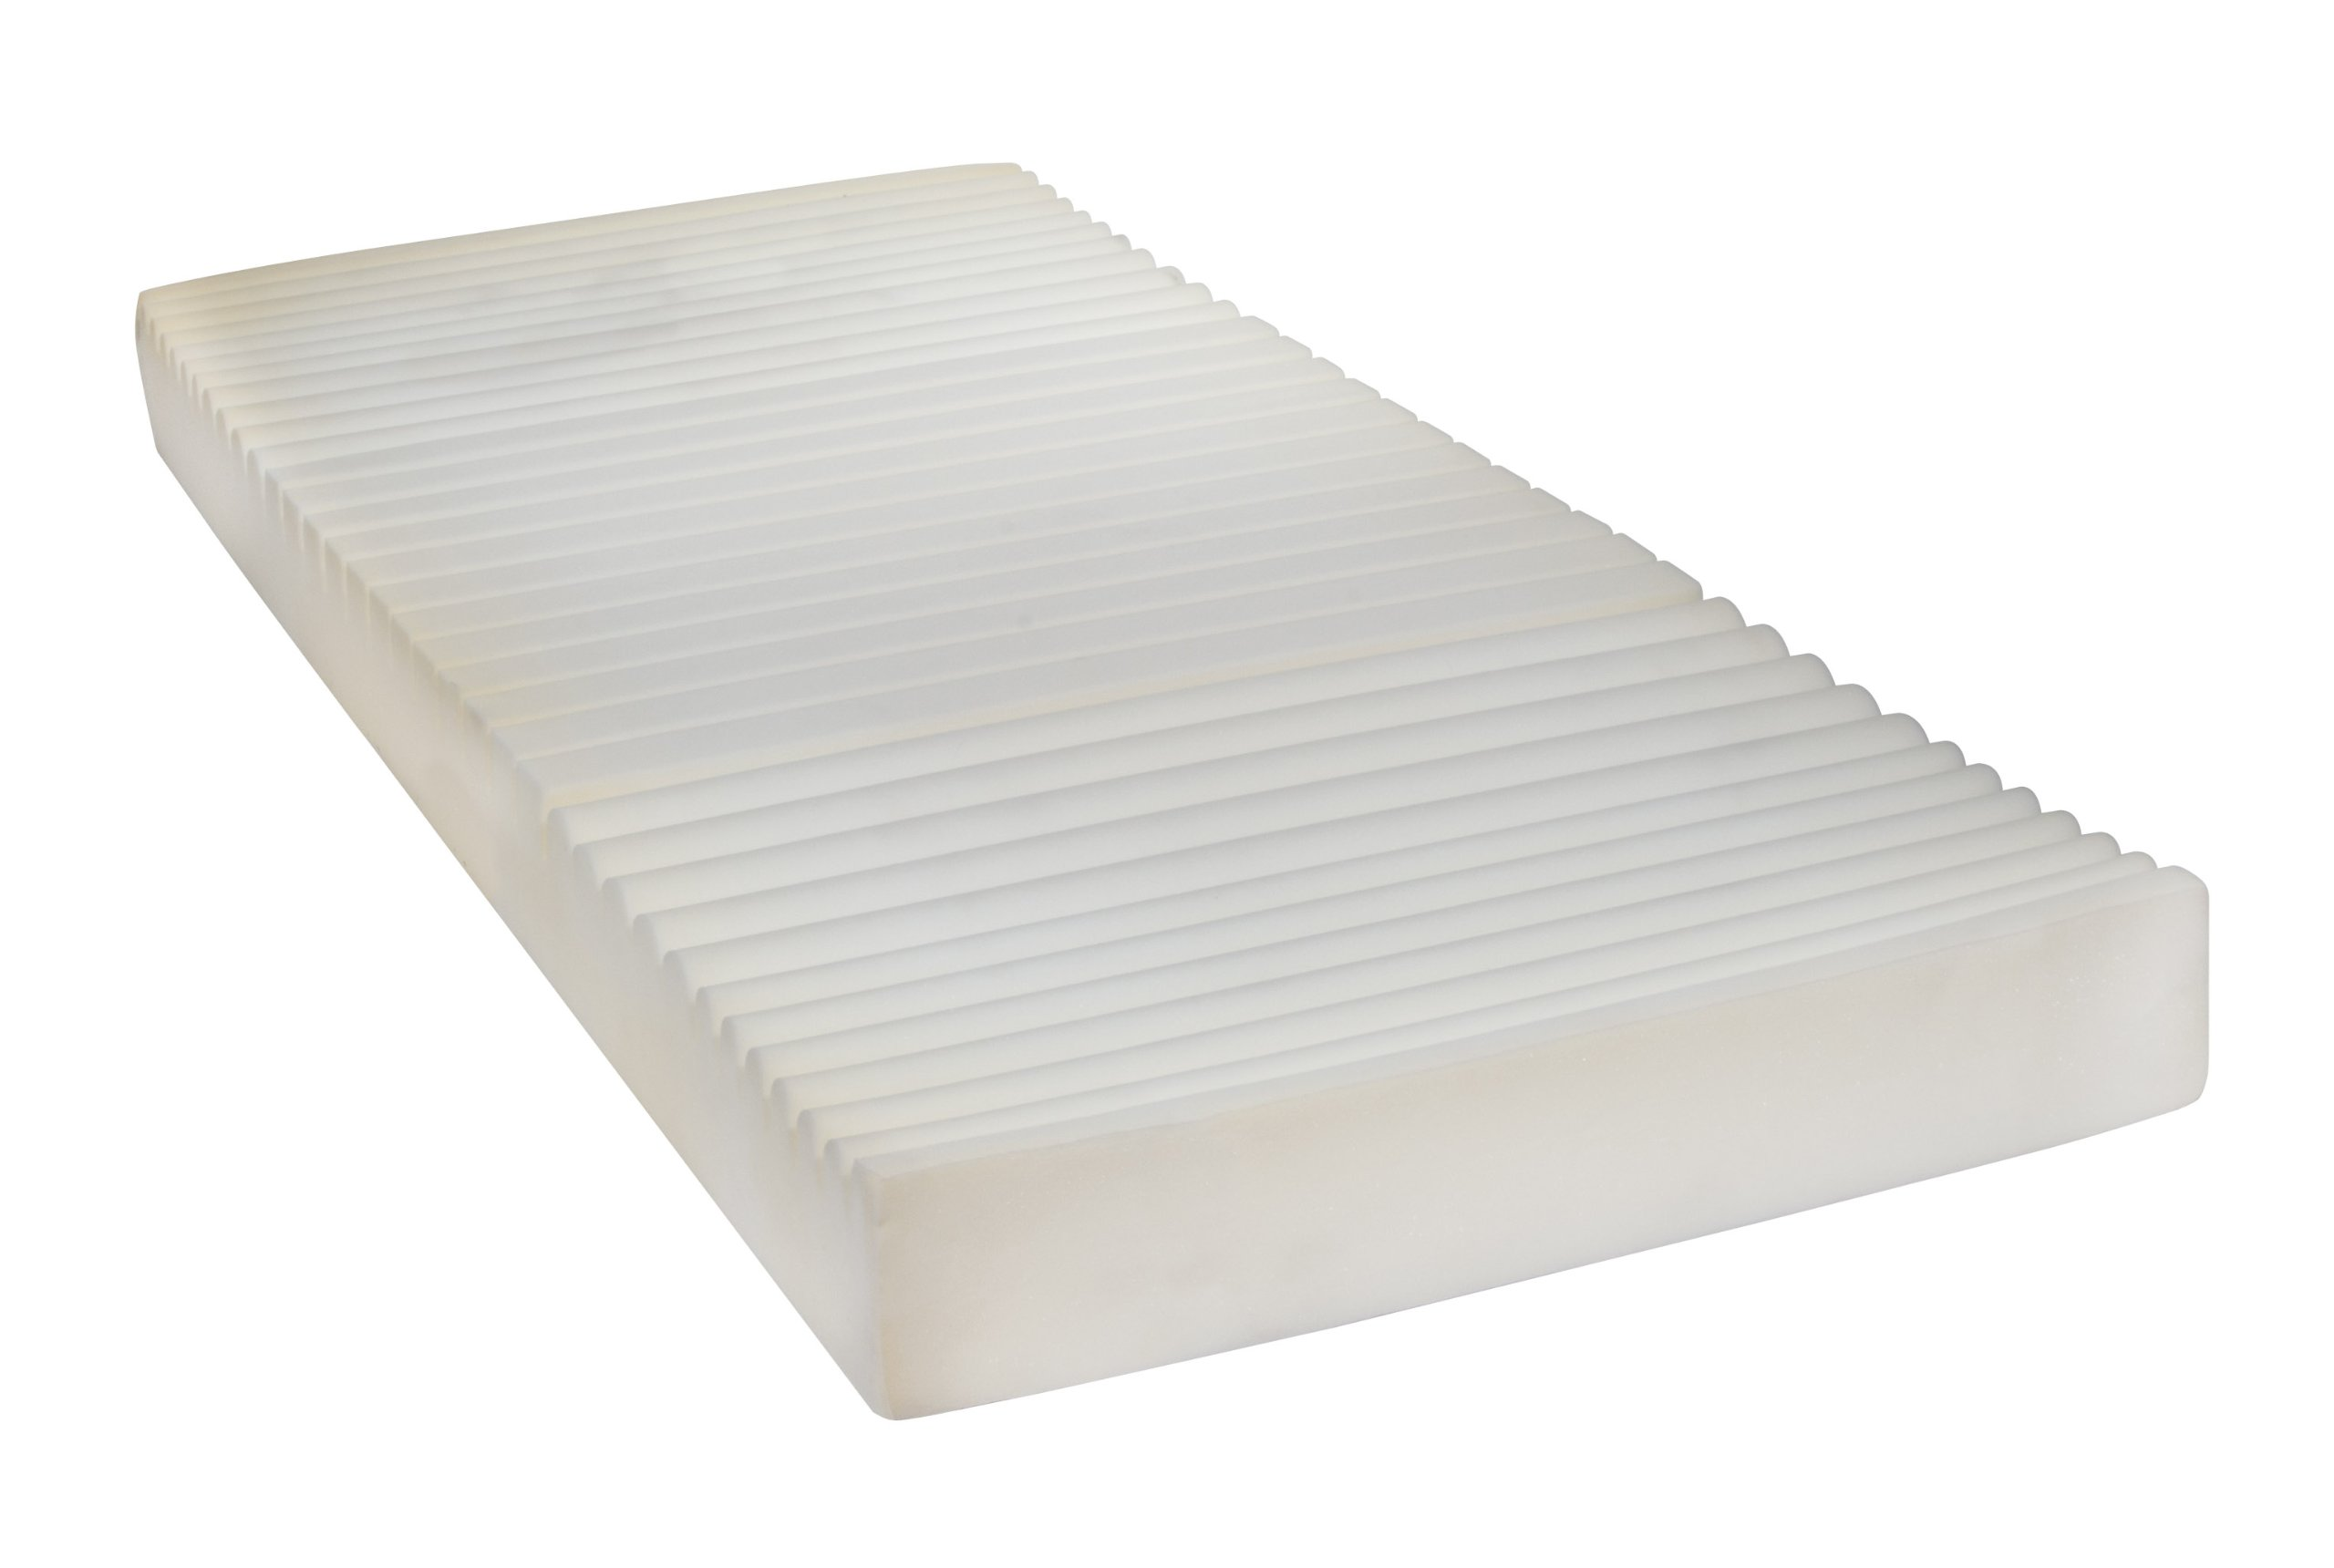 Drive Medical Therapeutic 5 Zone Support Mattress, White, 35'' x 80'' x 5. 5''